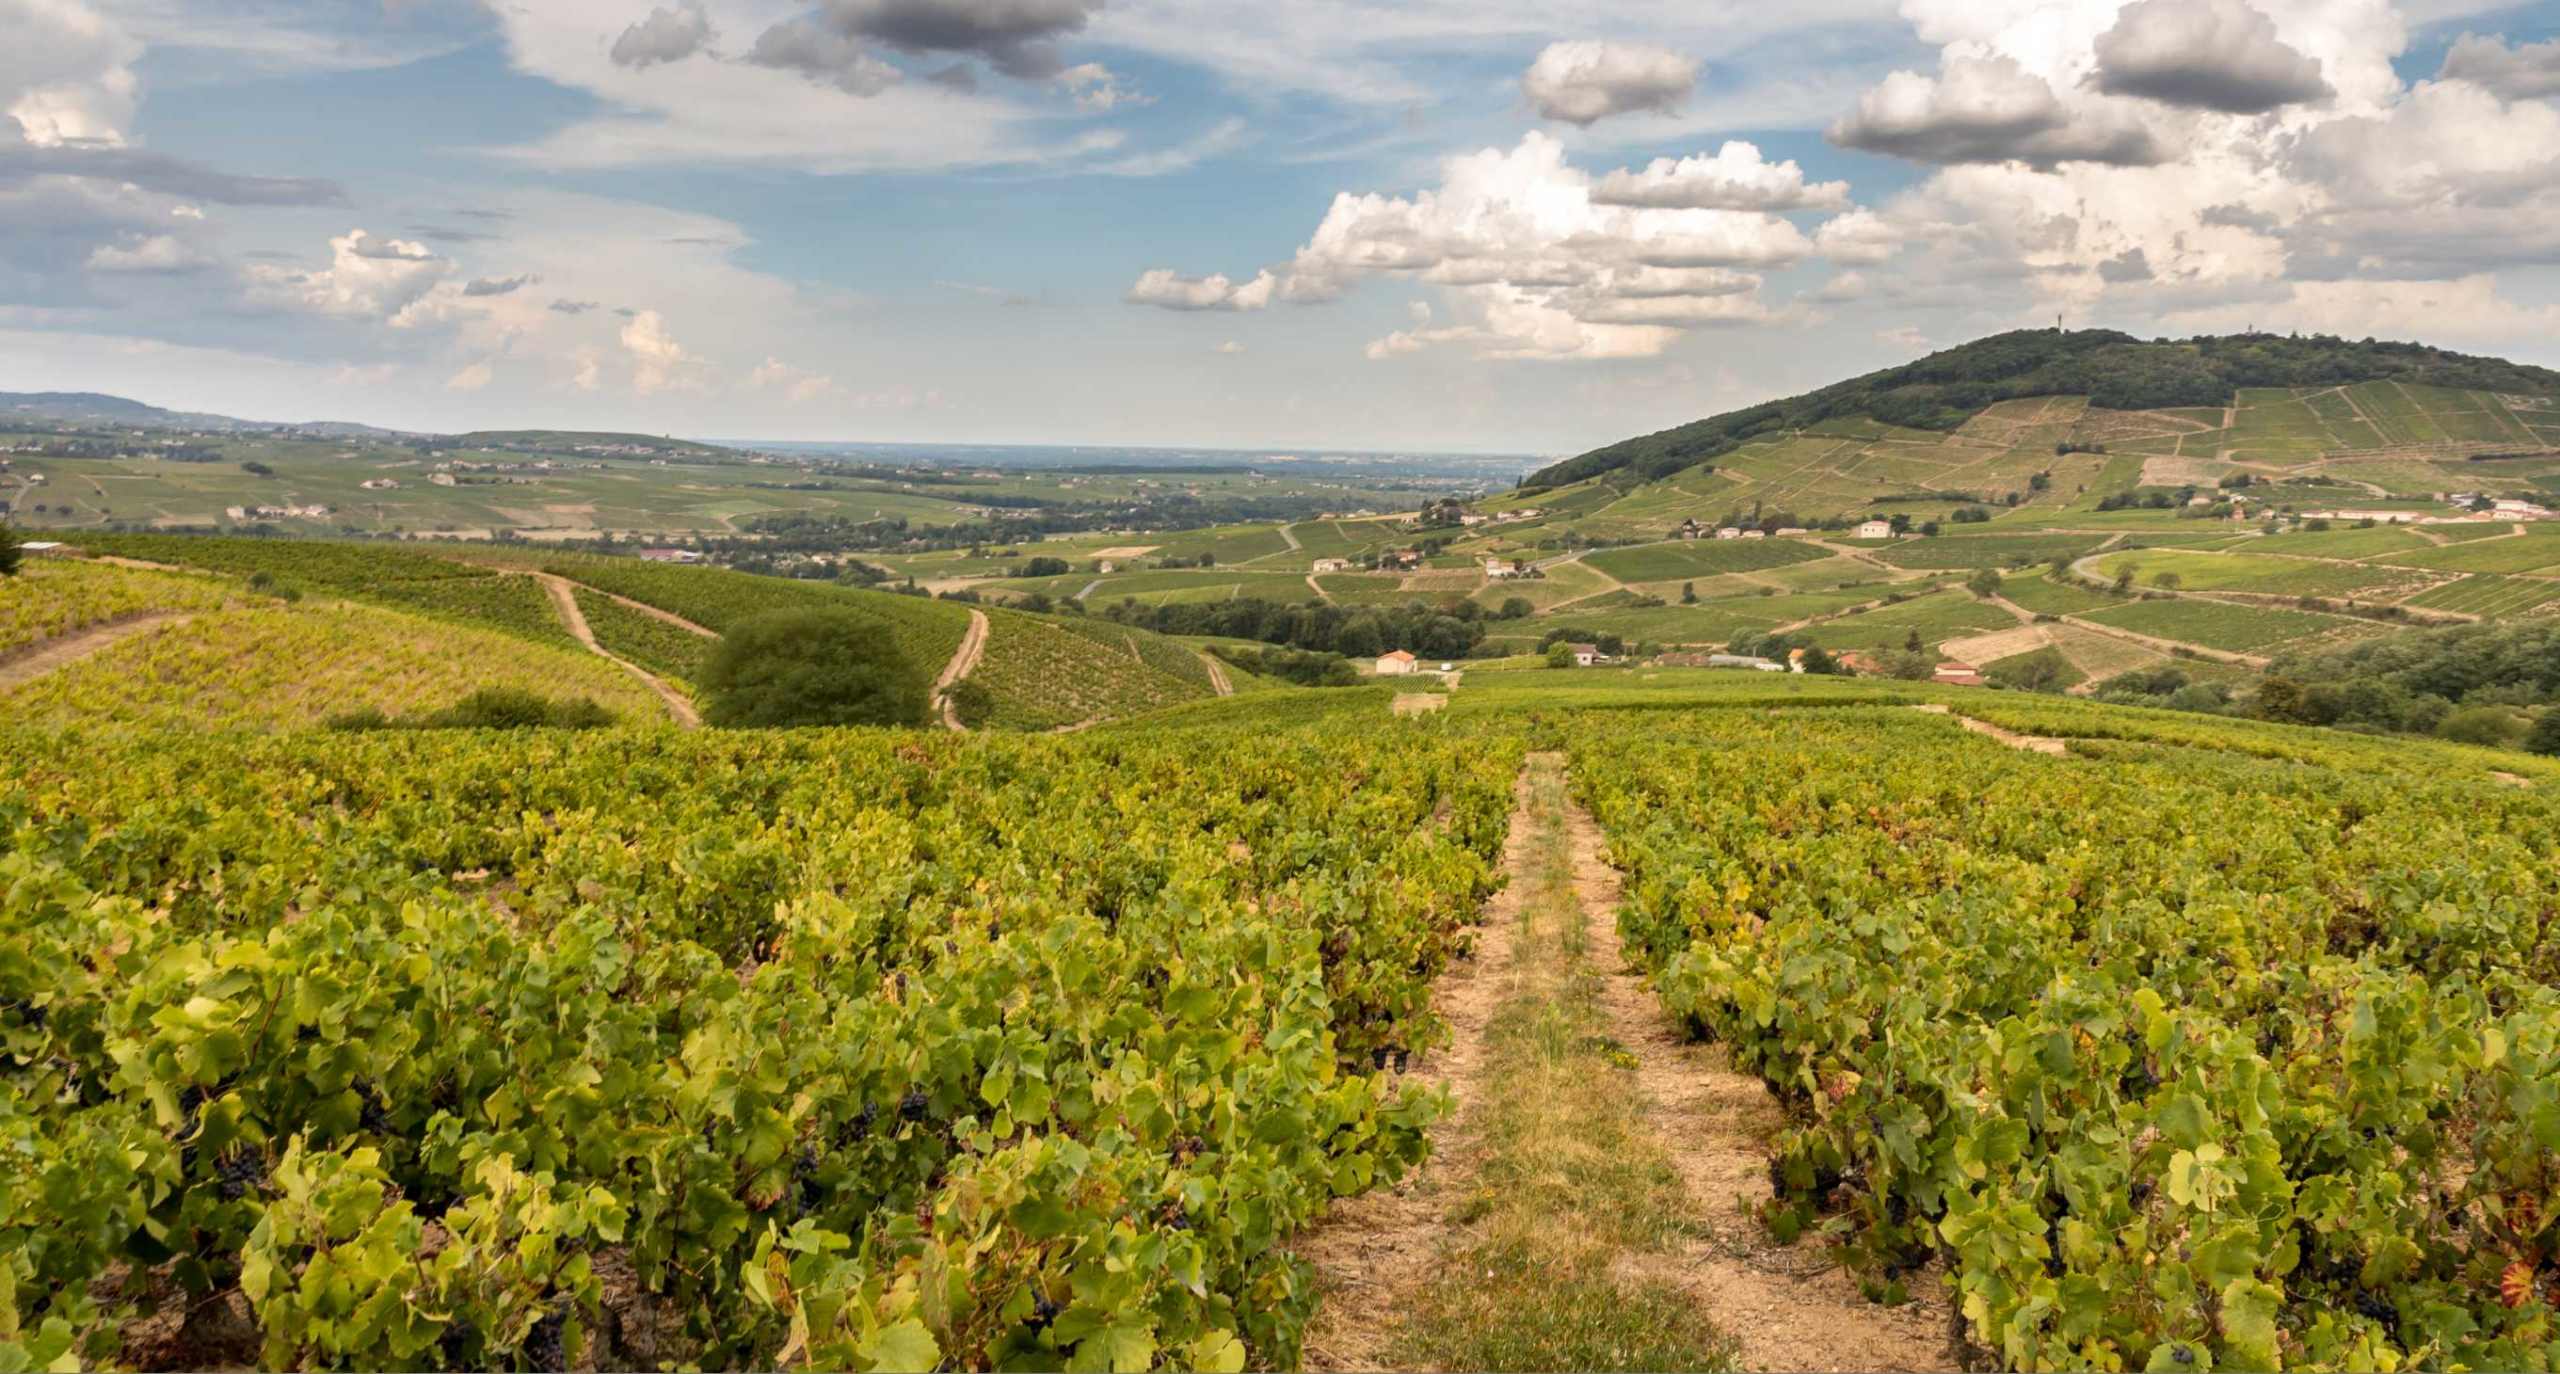 The Beaujolais region